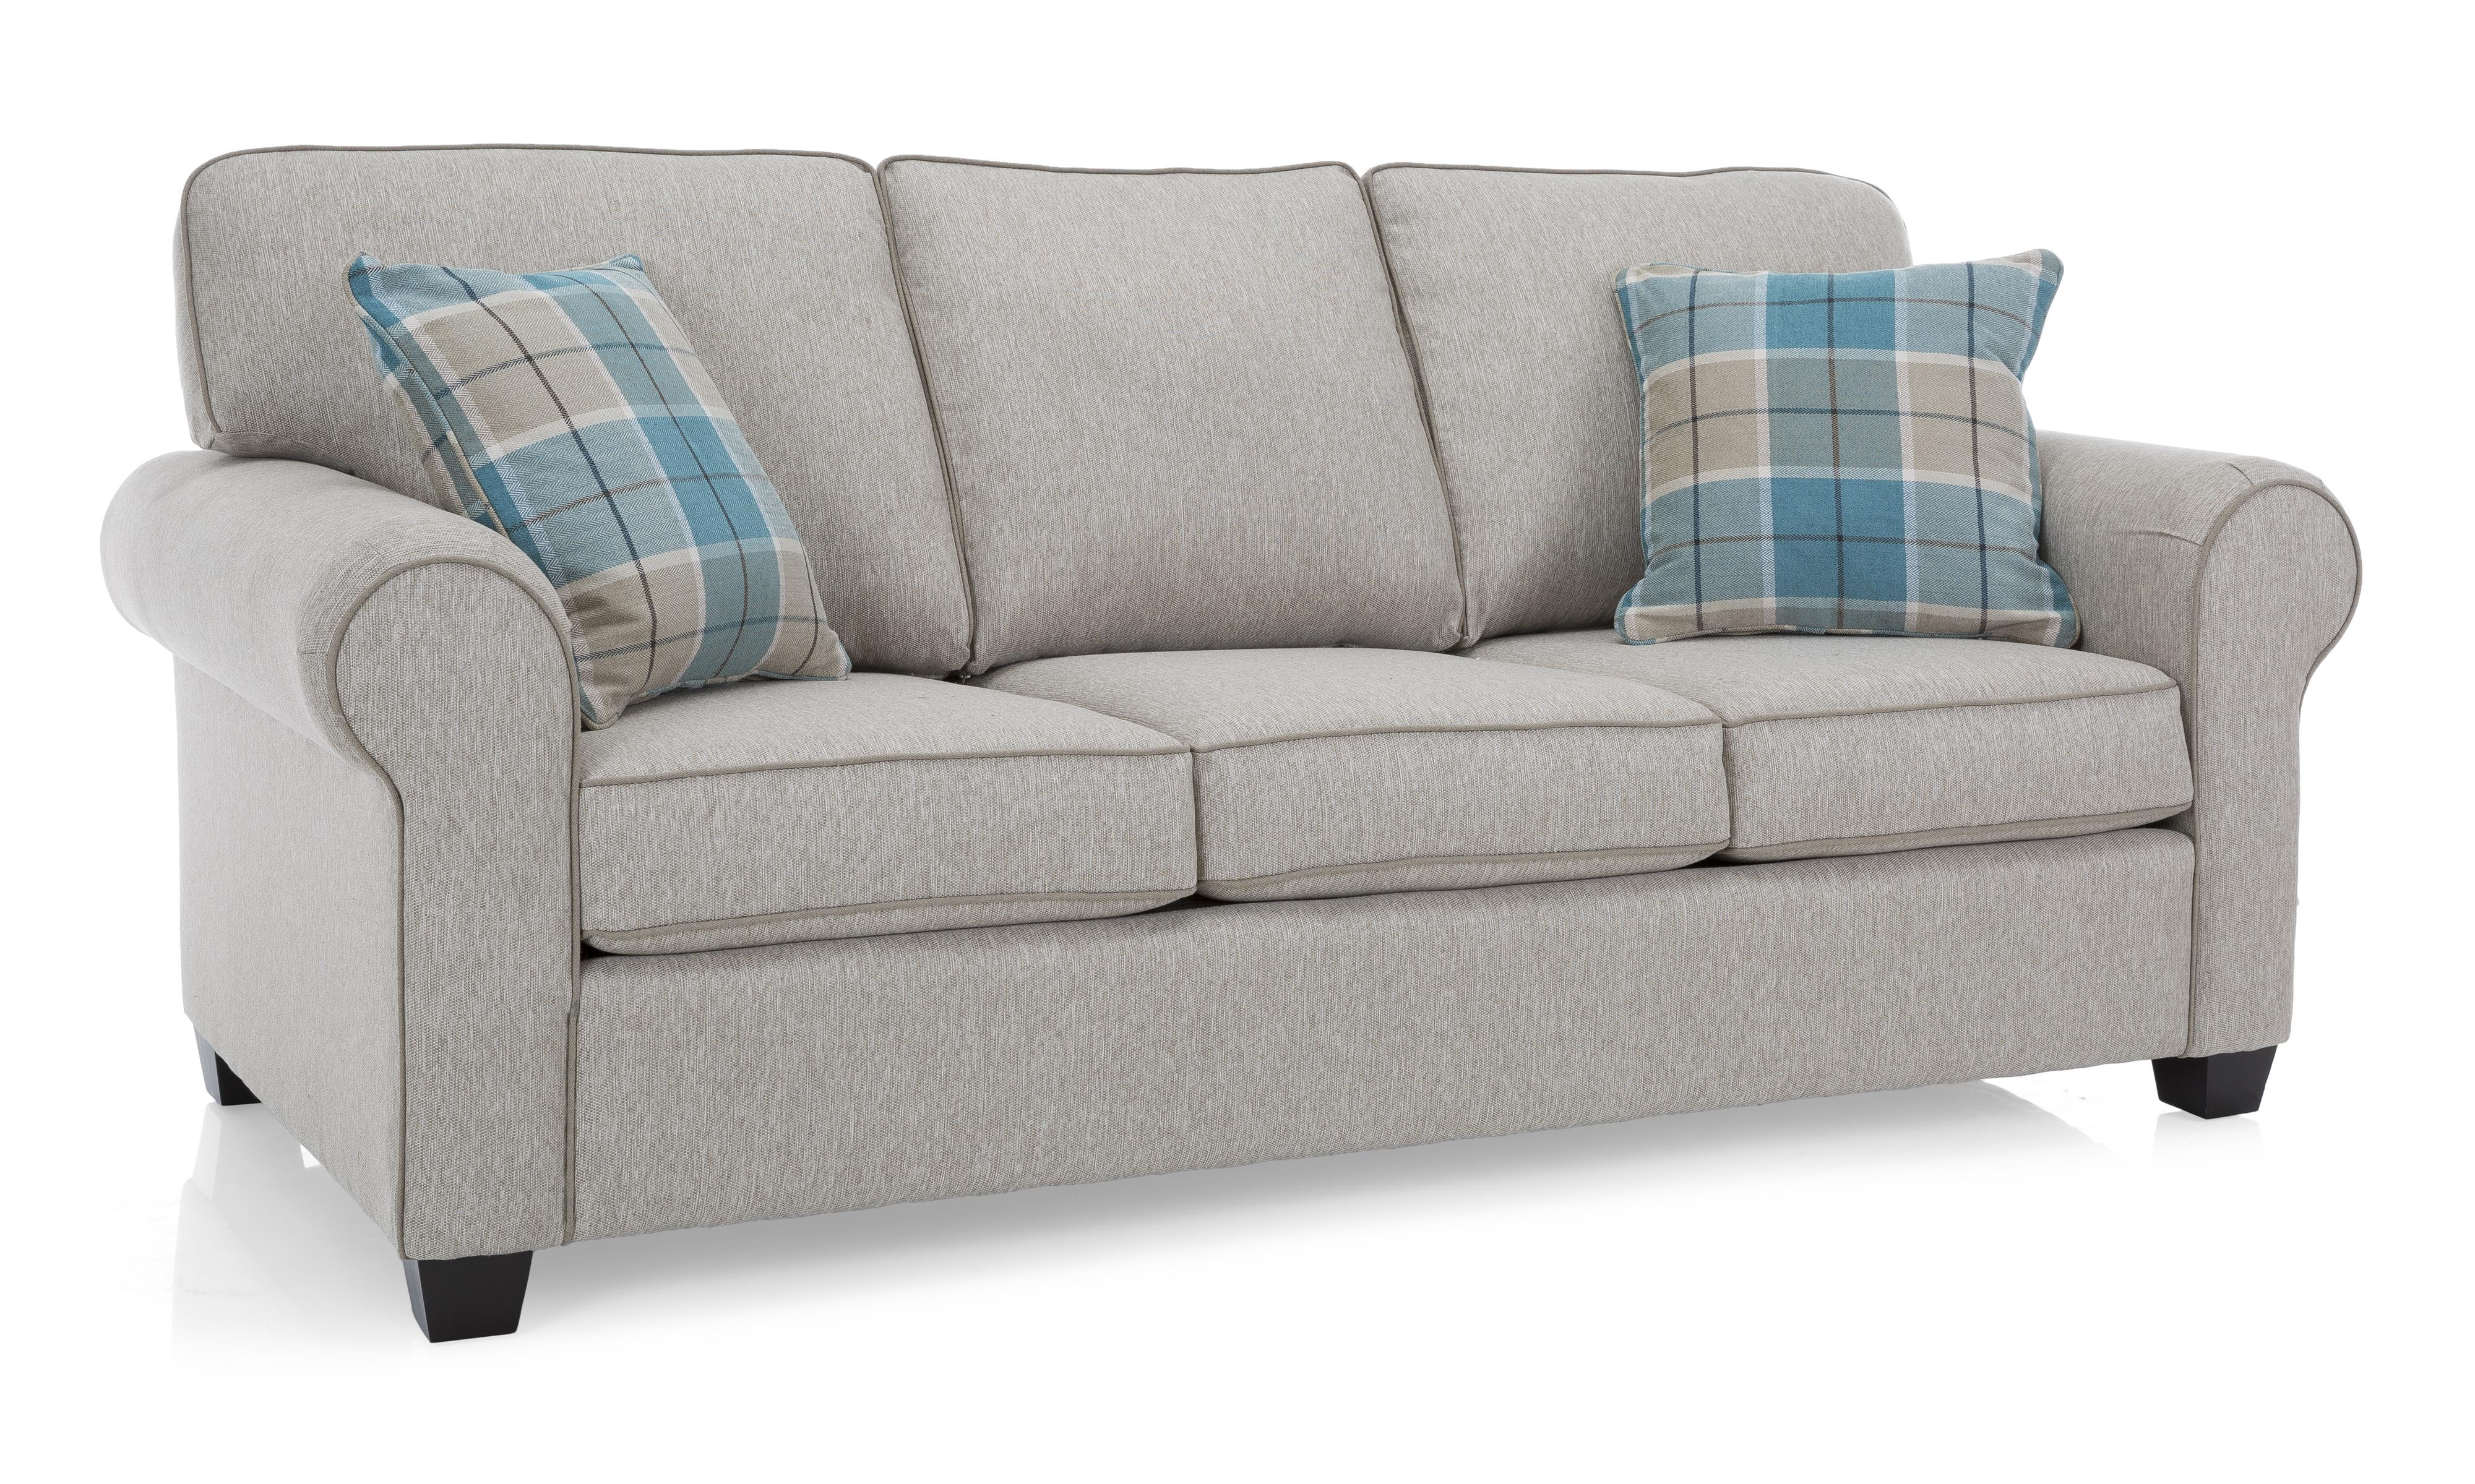 2179 Sofa by Decor-Rest at Rooms for Less